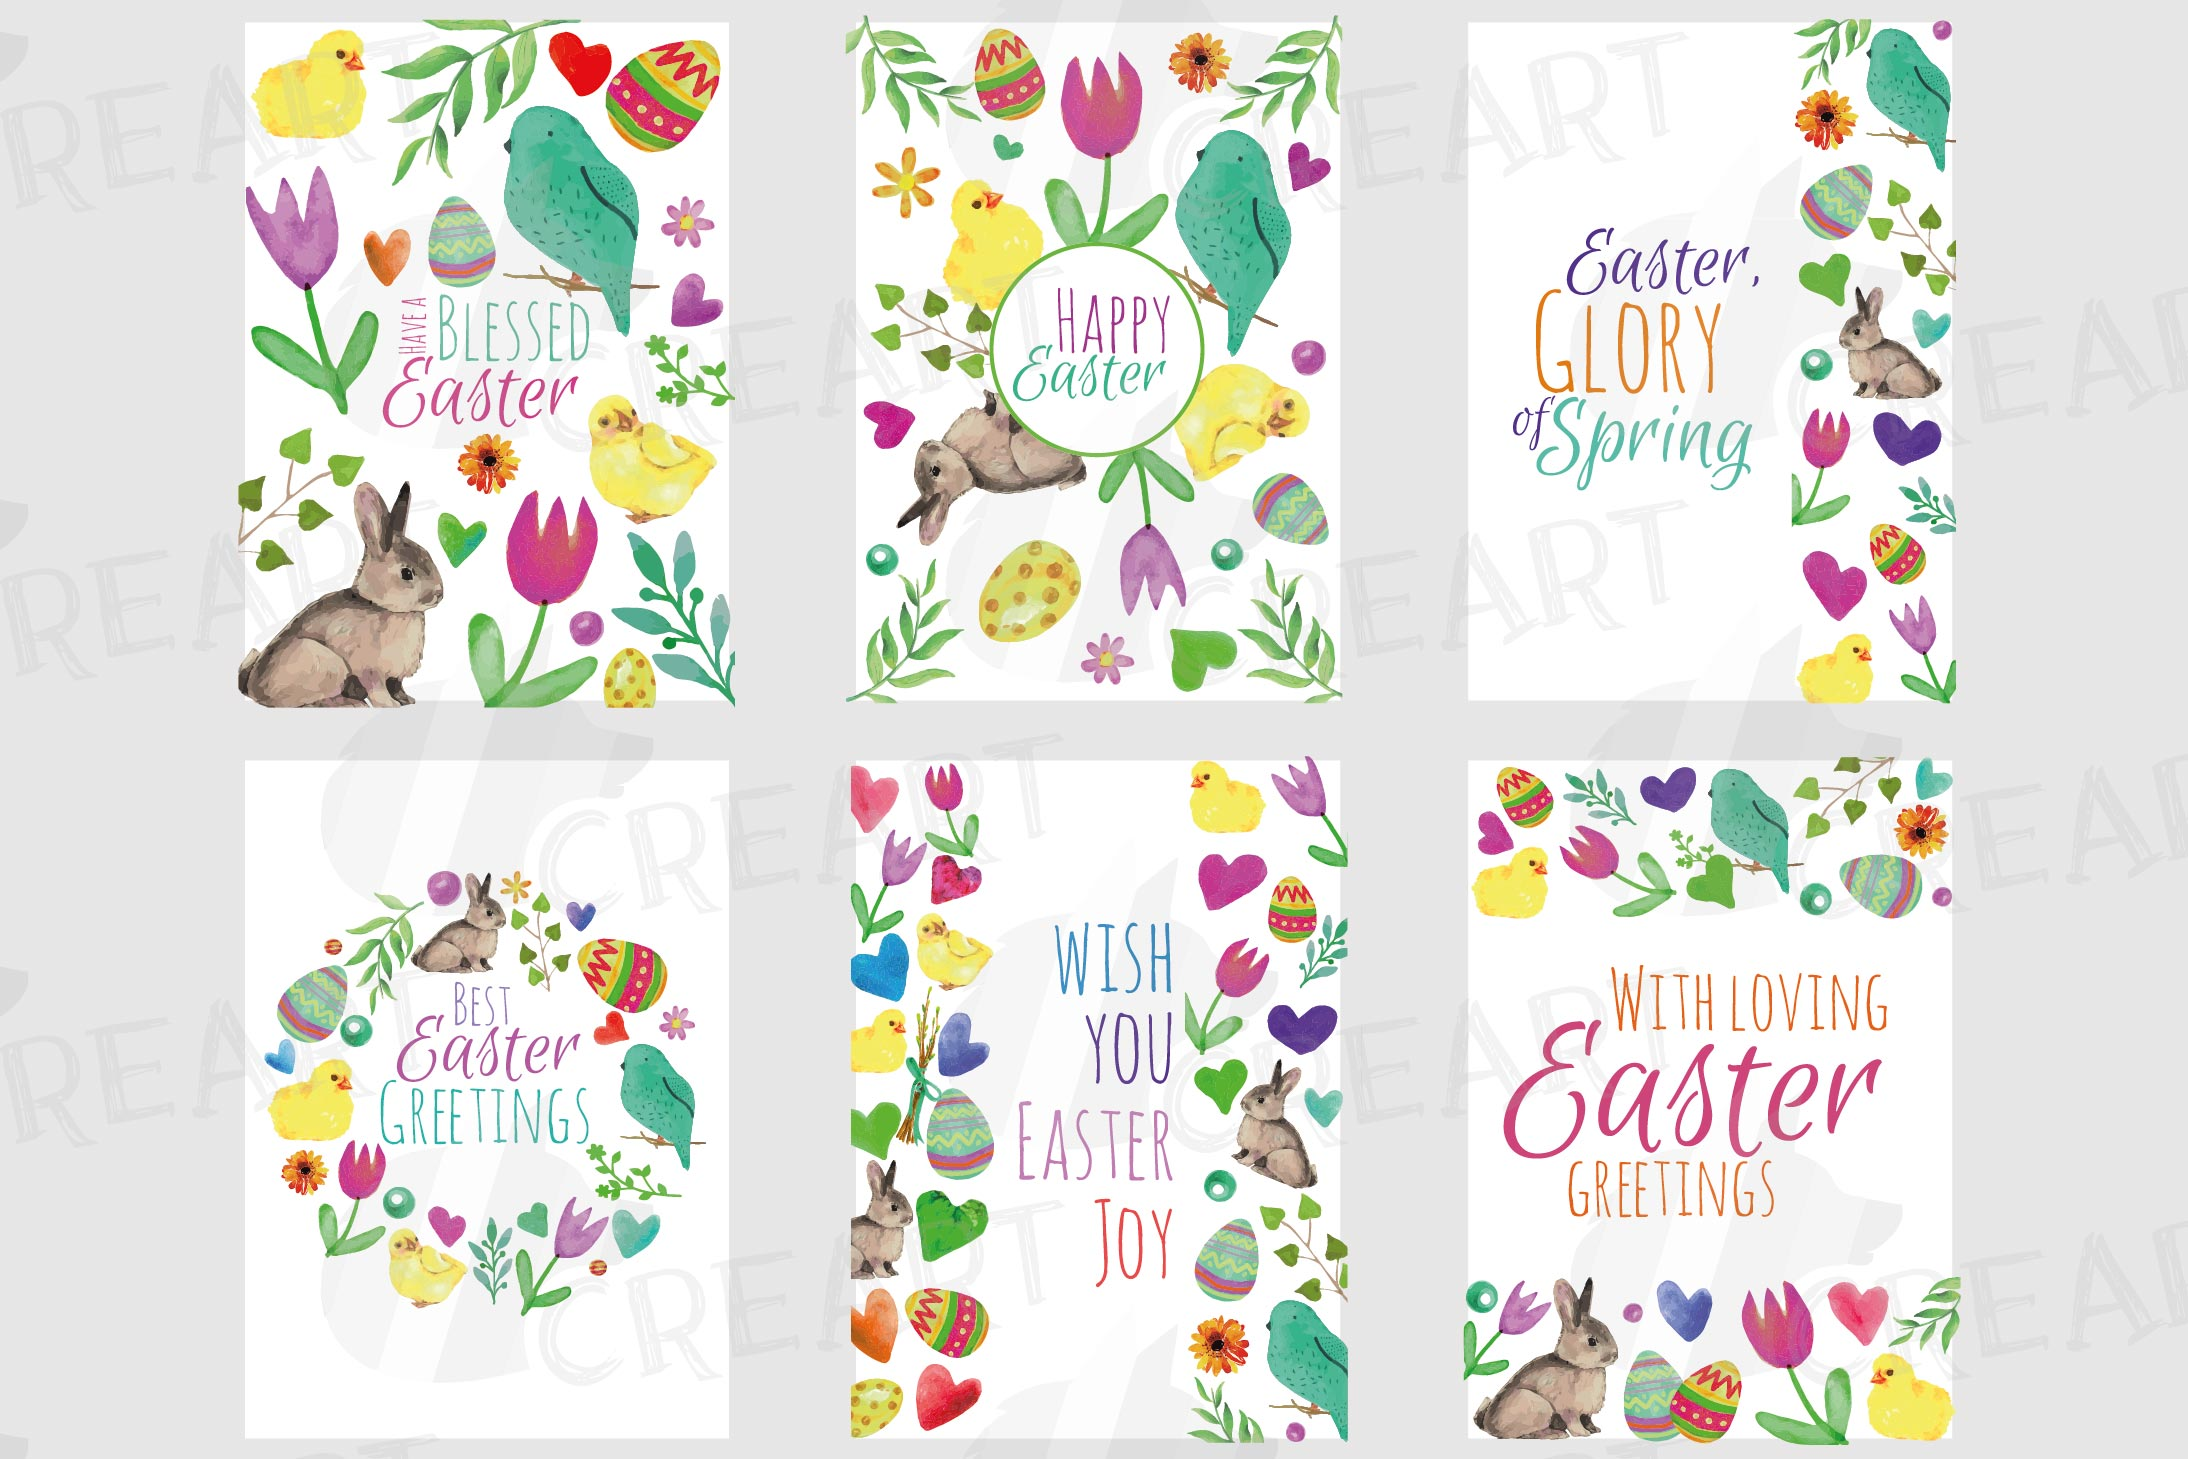 Easter greeting cards, 6 Happy Easter cards, colorful cards example image 2